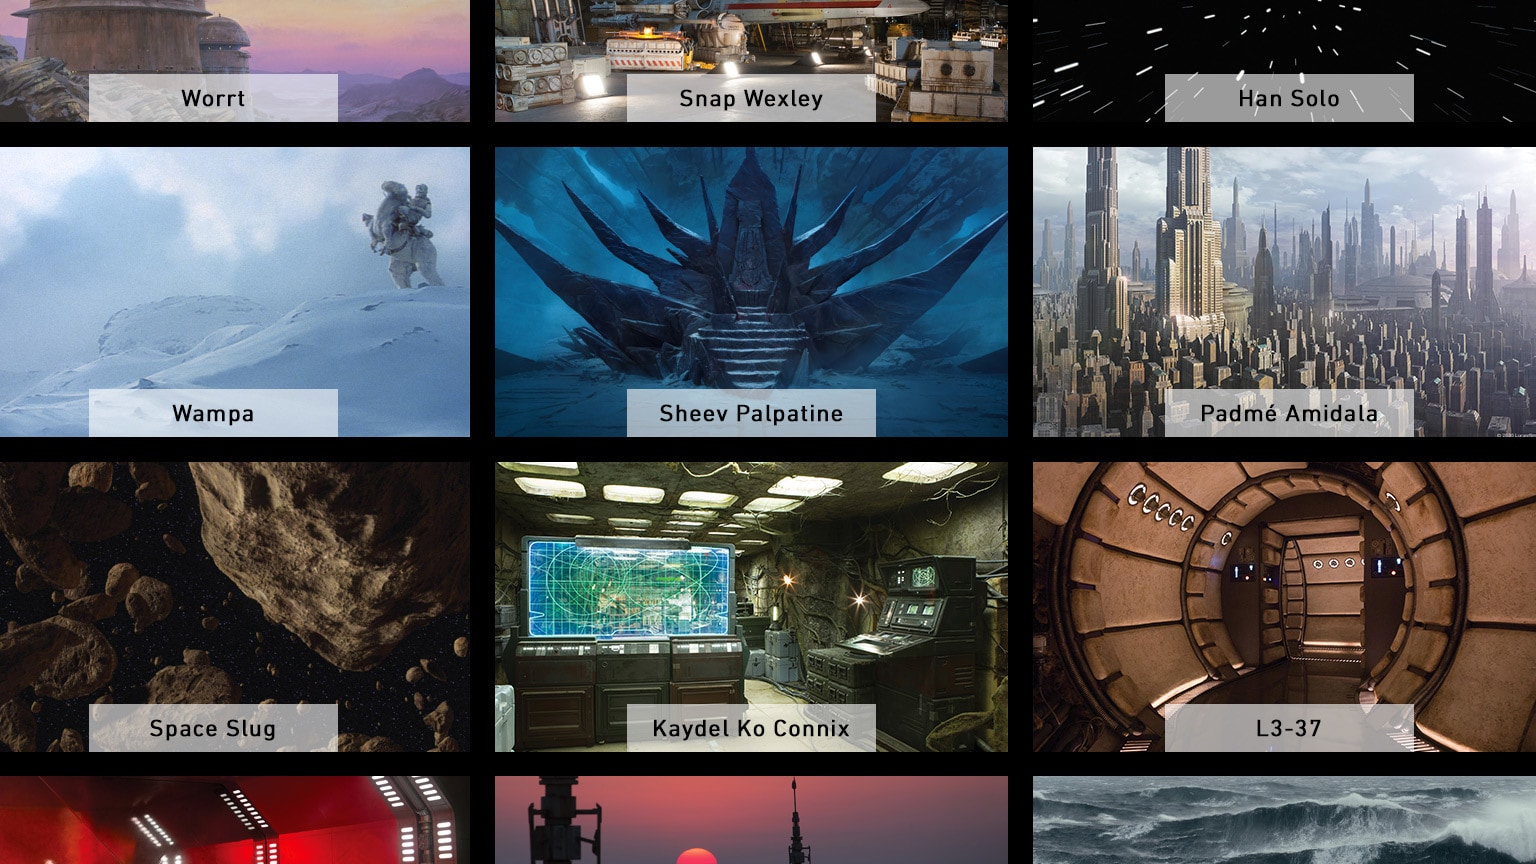 Join Meetings from A Galaxy Far, Far Away with These Star Wars Backgrounds